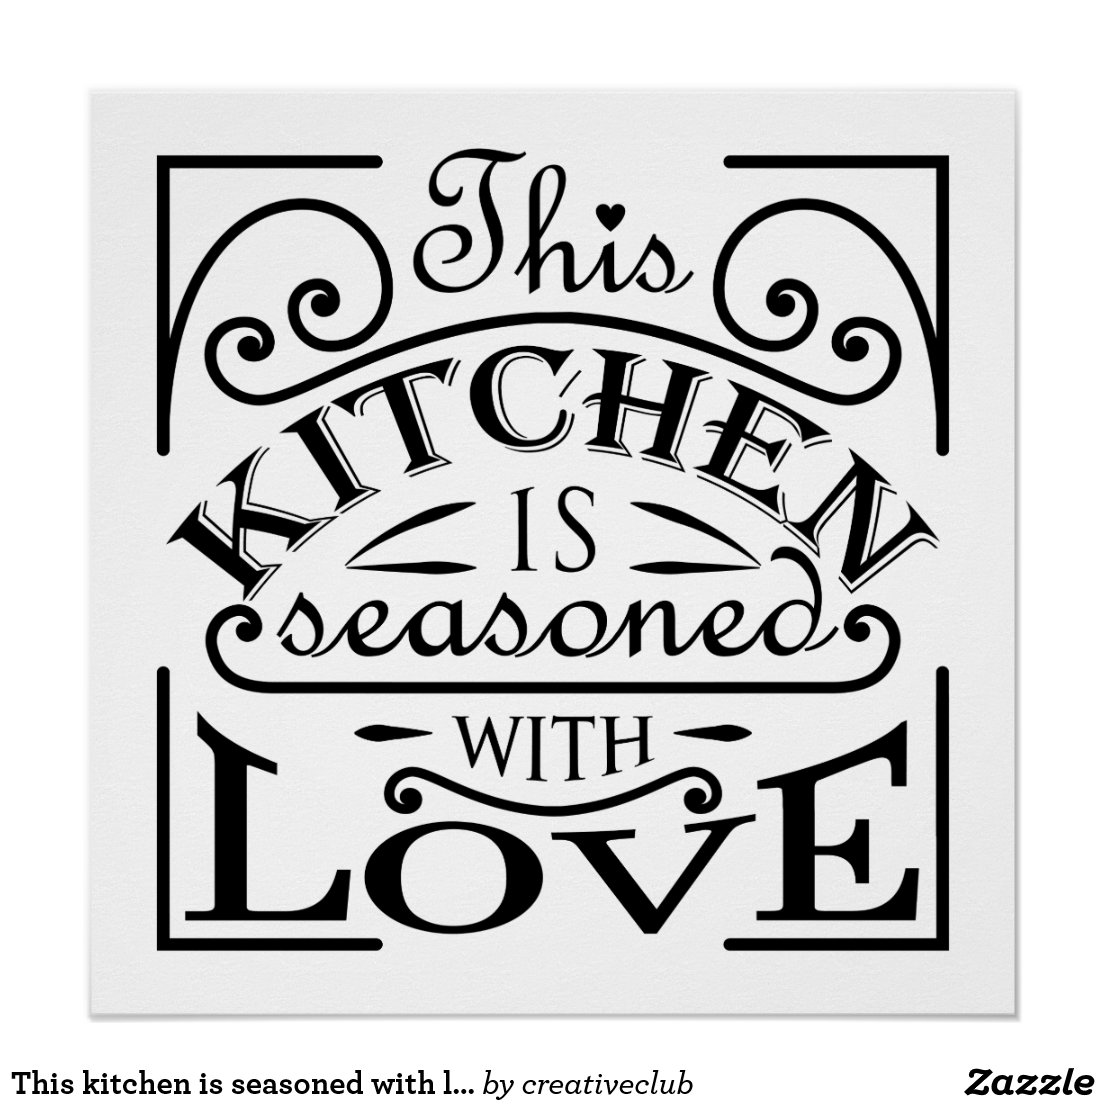 This kitchen is seasoned with love poster